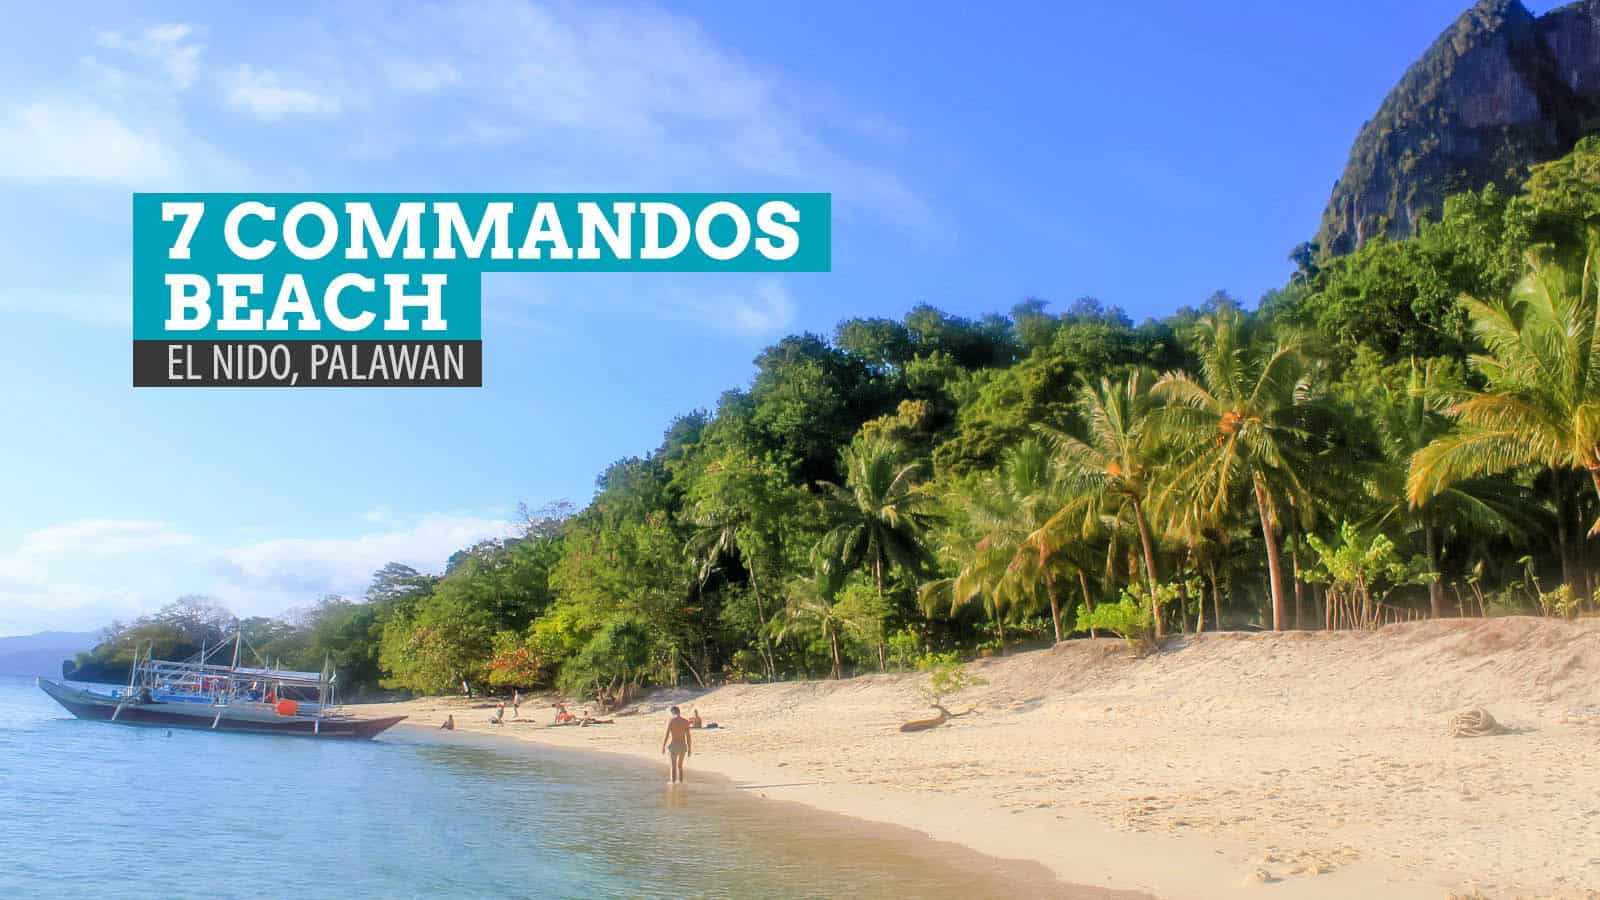 The 7 Commandos Beach and the 7 Lost Soldiers: El Nido, Palawan, Philippines